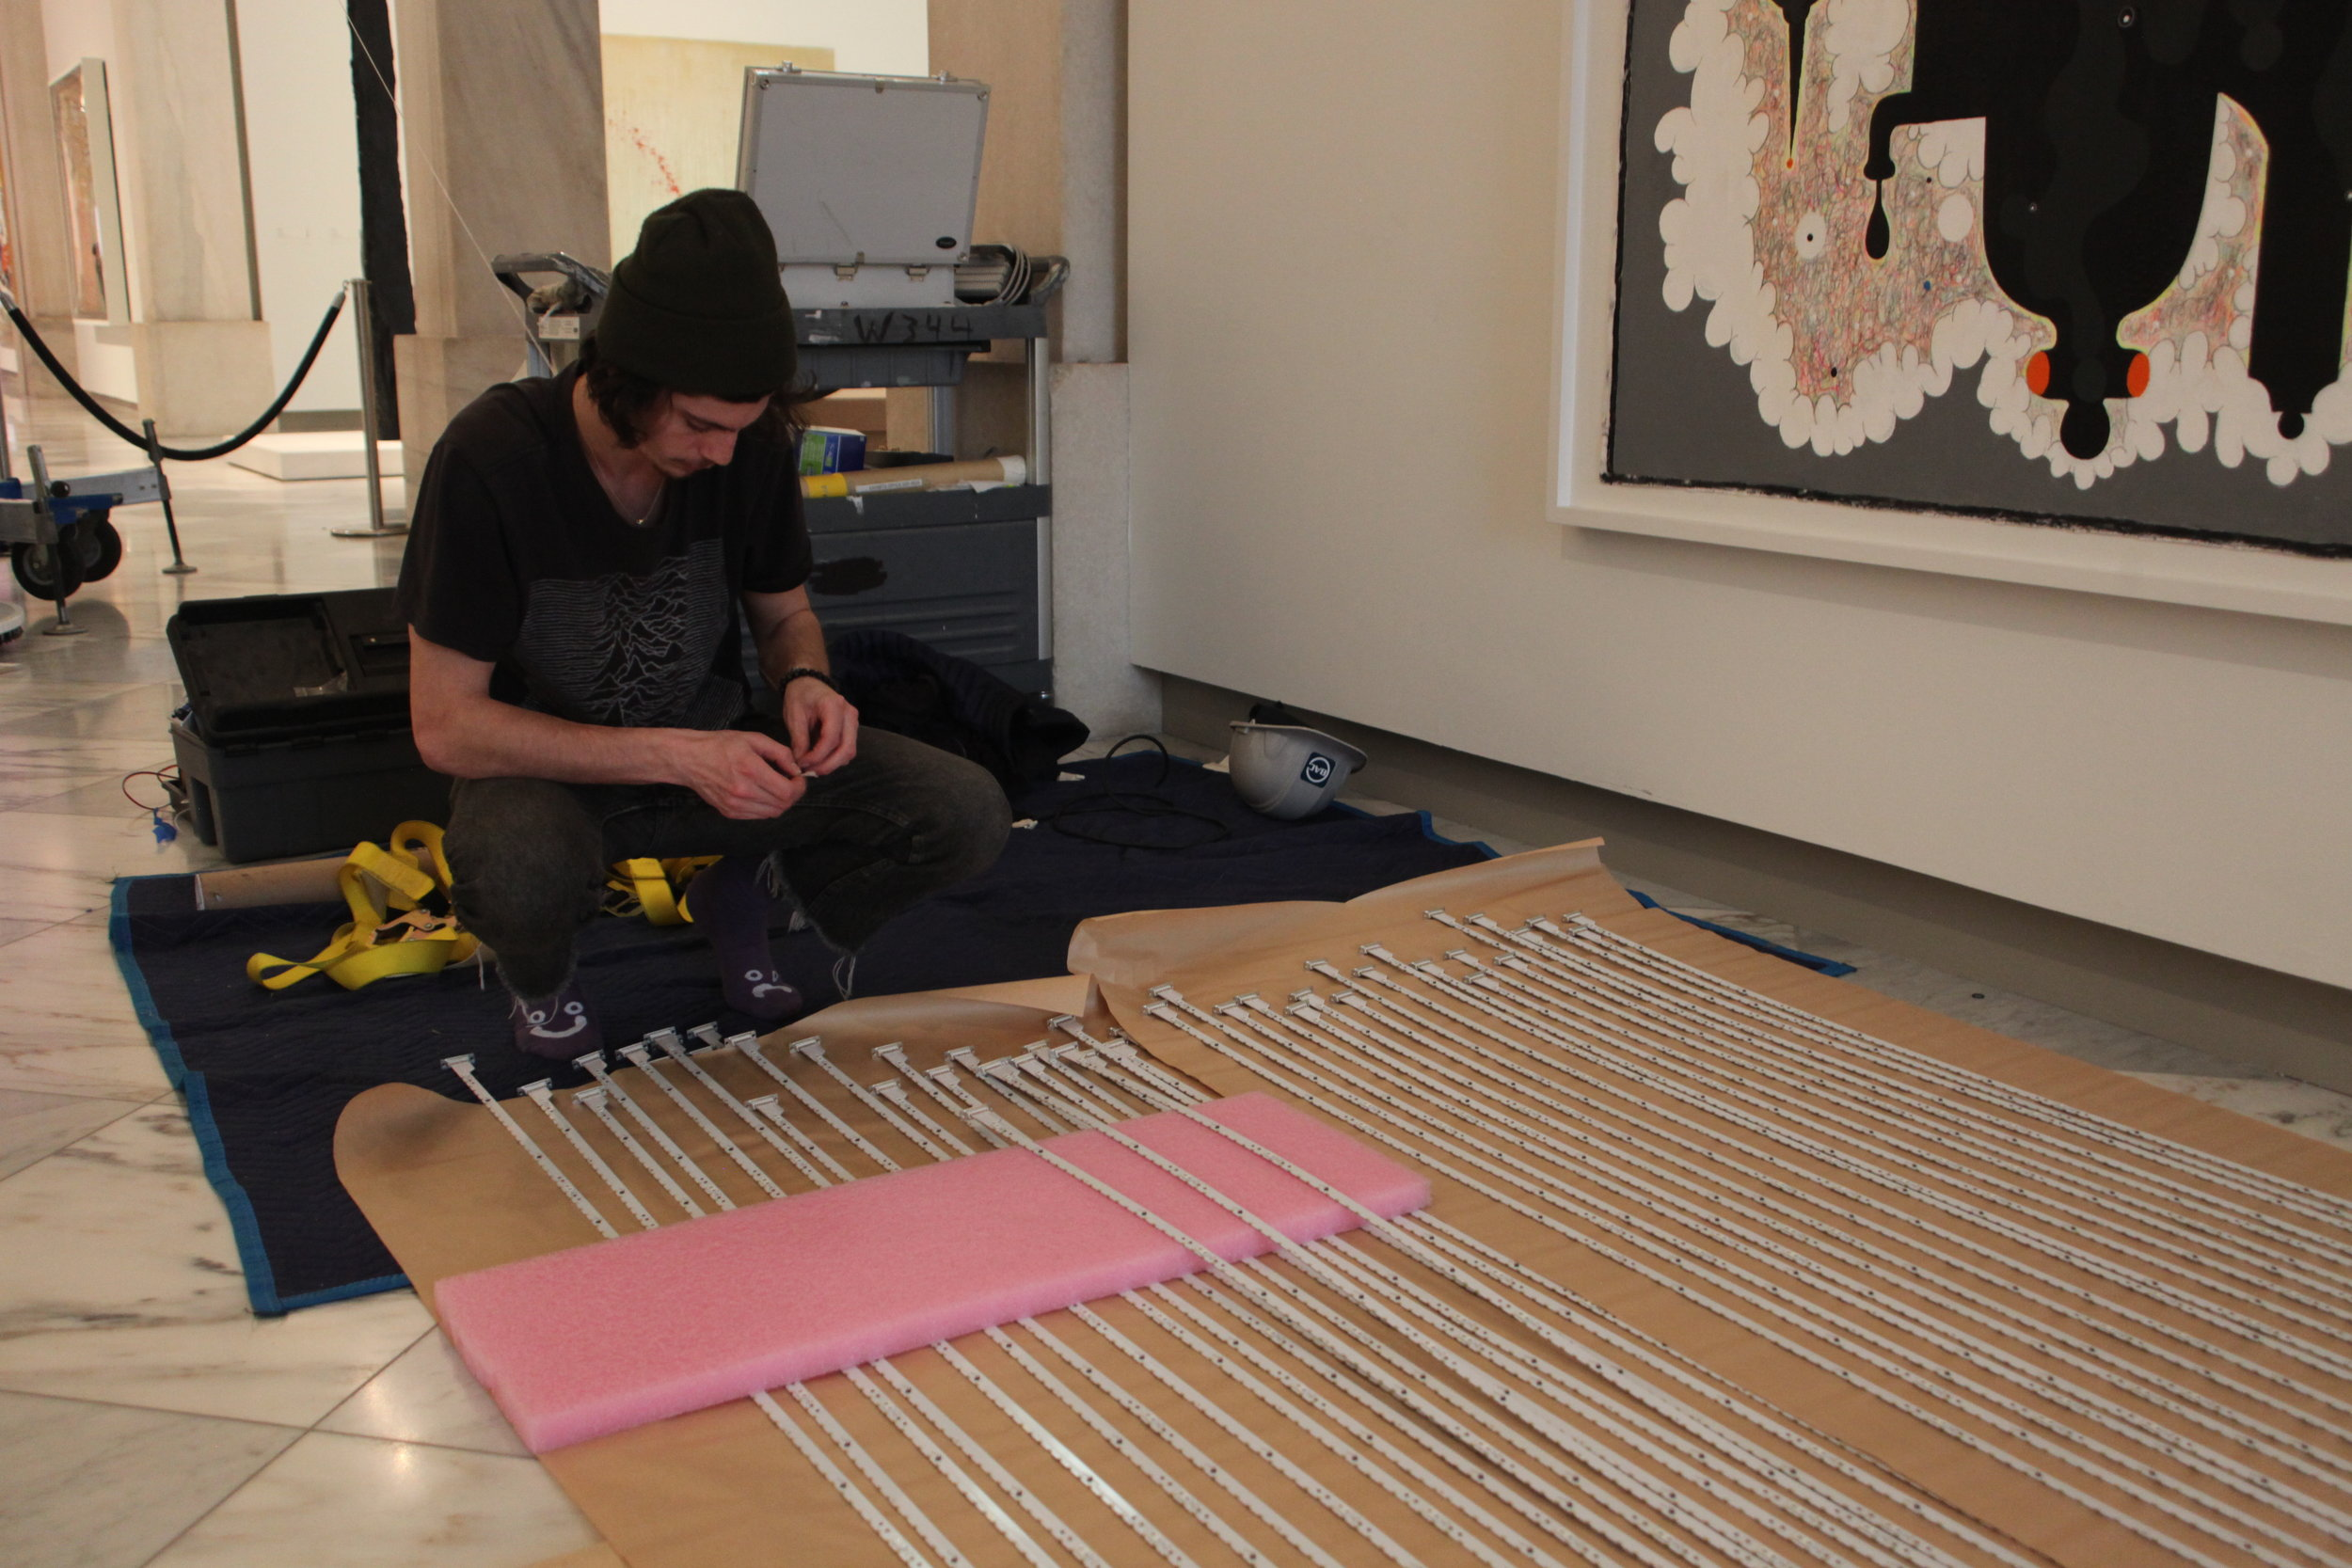 Parallel's, Ian DaRin, putting together PCB strands